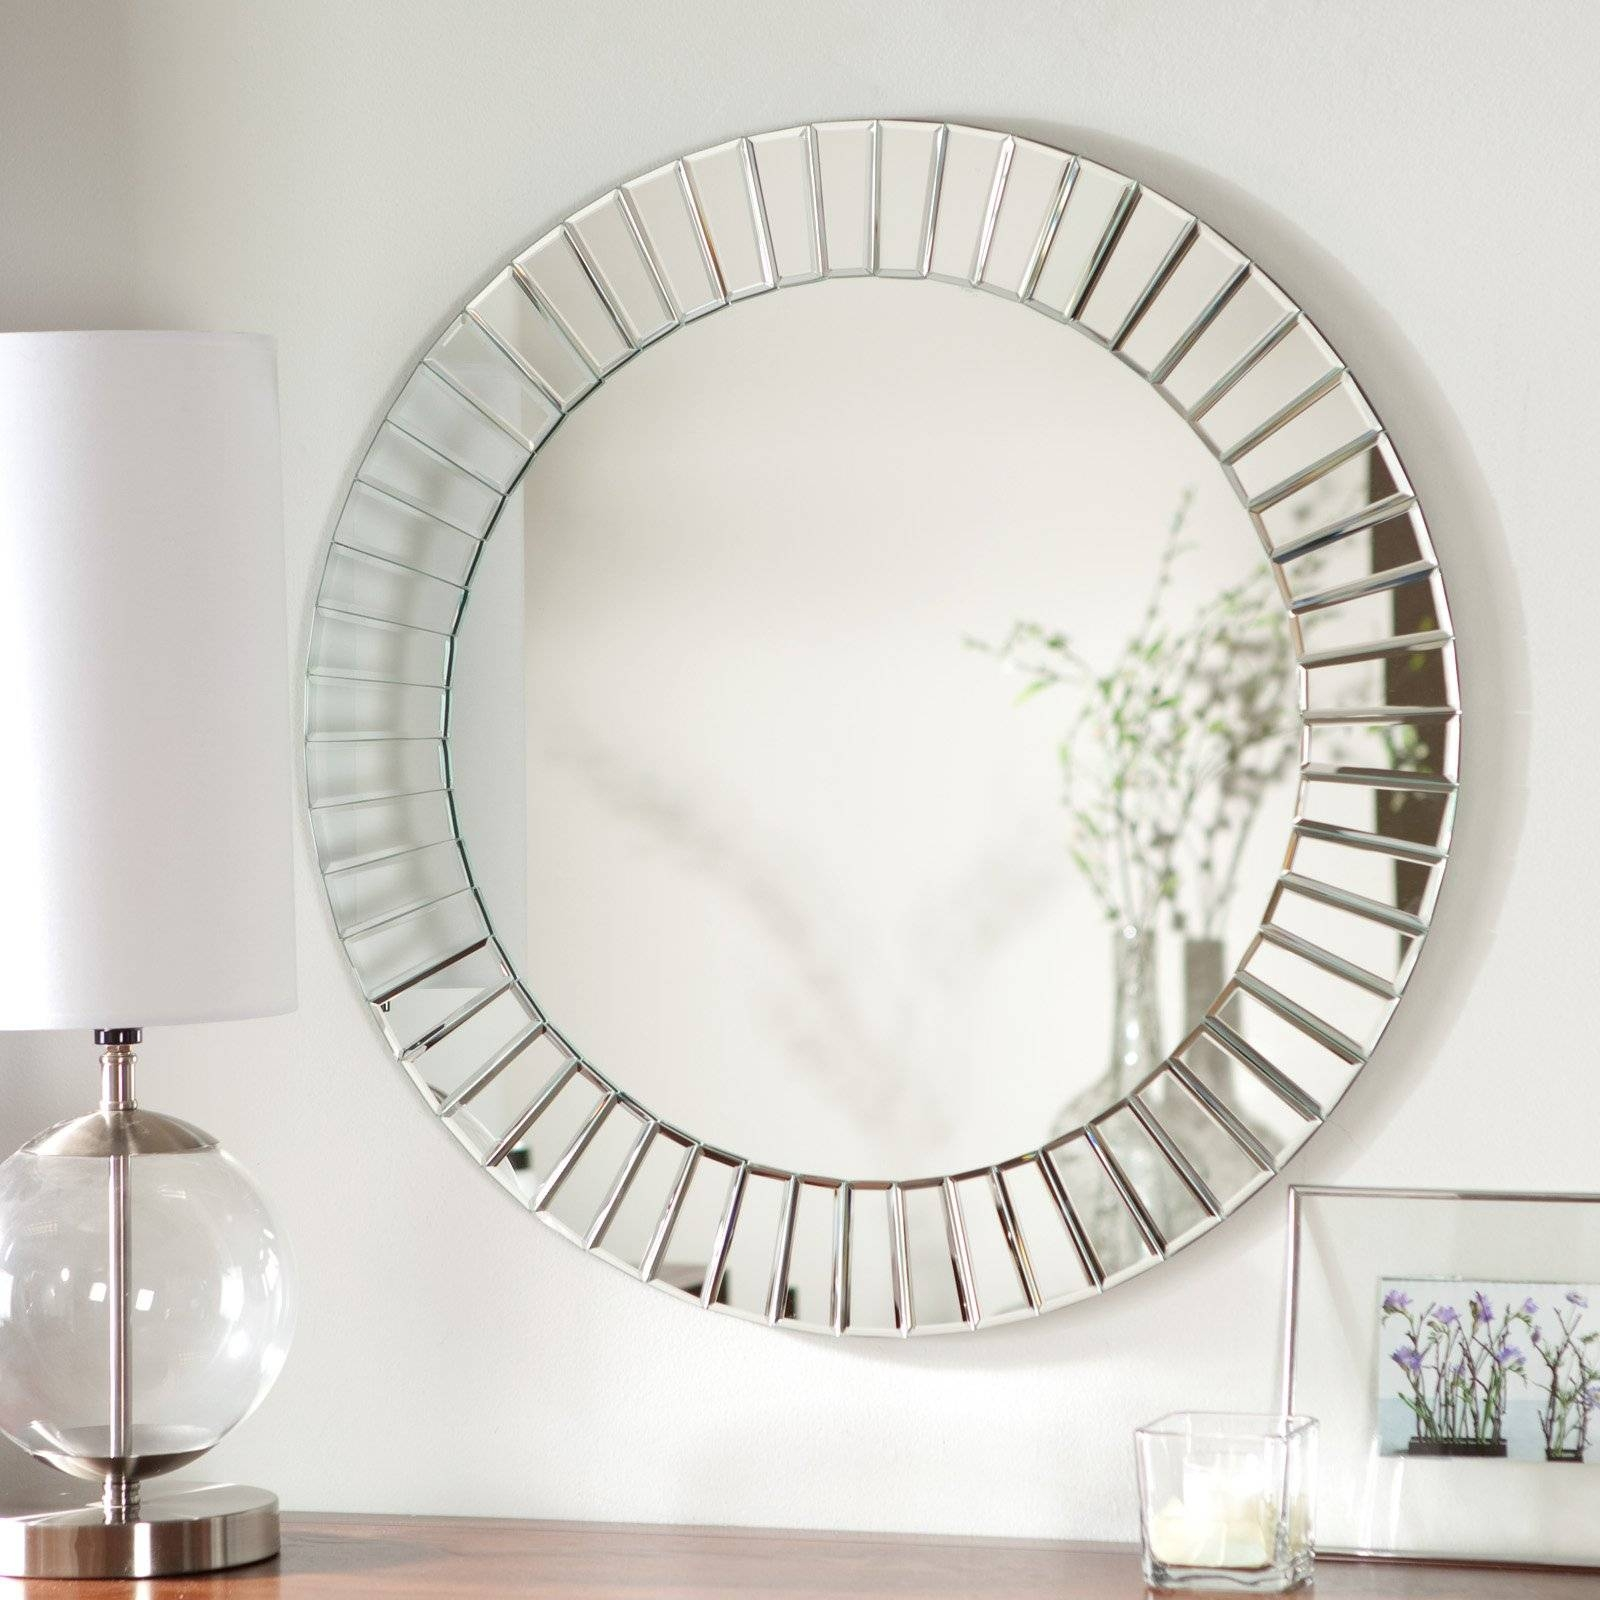 The Rich & Frameless Mirrors – Room Refresh | Hayneedle Intended For Frameless Arched Mirrors (View 23 of 25)